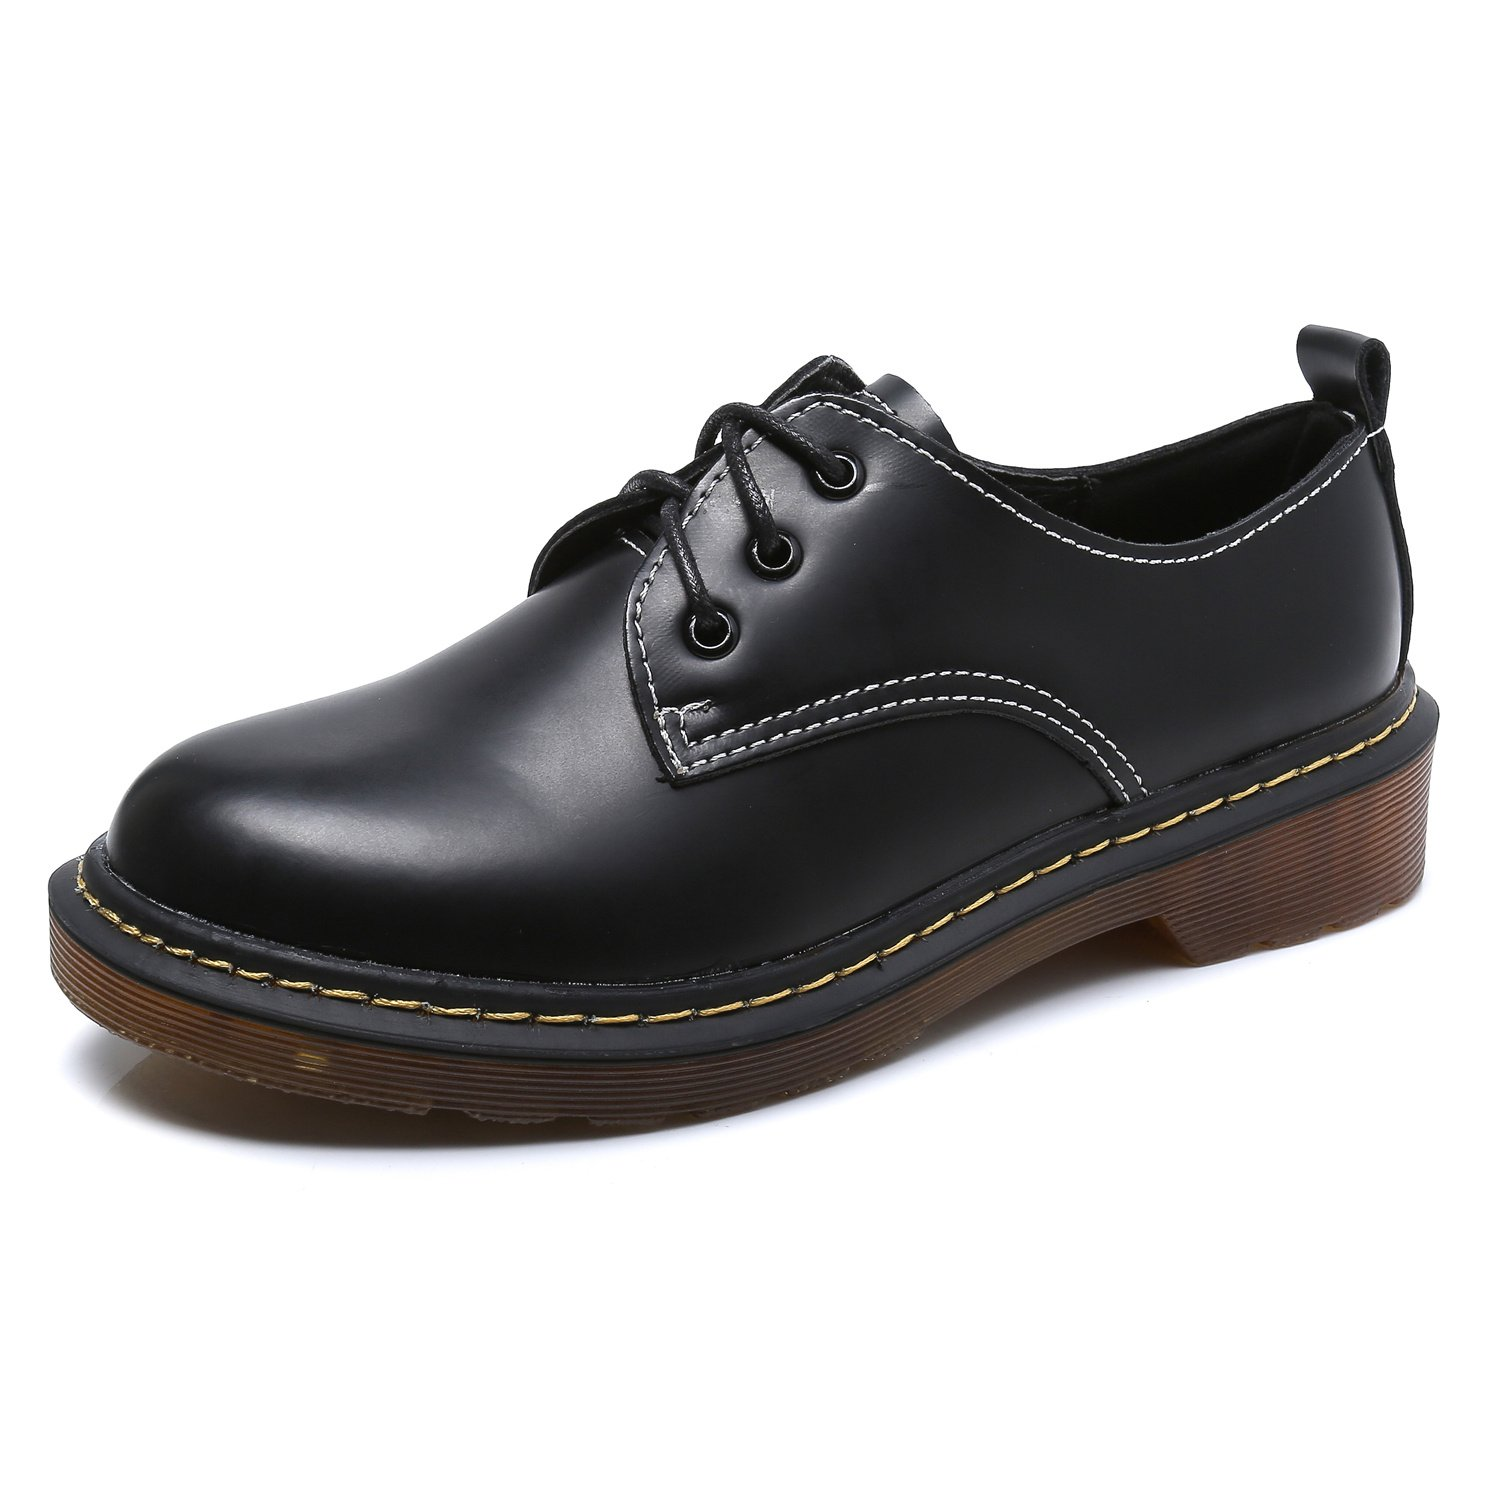 Smilun Girl¡¯s Derby Classic Lace-up Shoes Smooth Leather Flats Office Business Dress Shoes for Girl Black Size 6 B(M) US